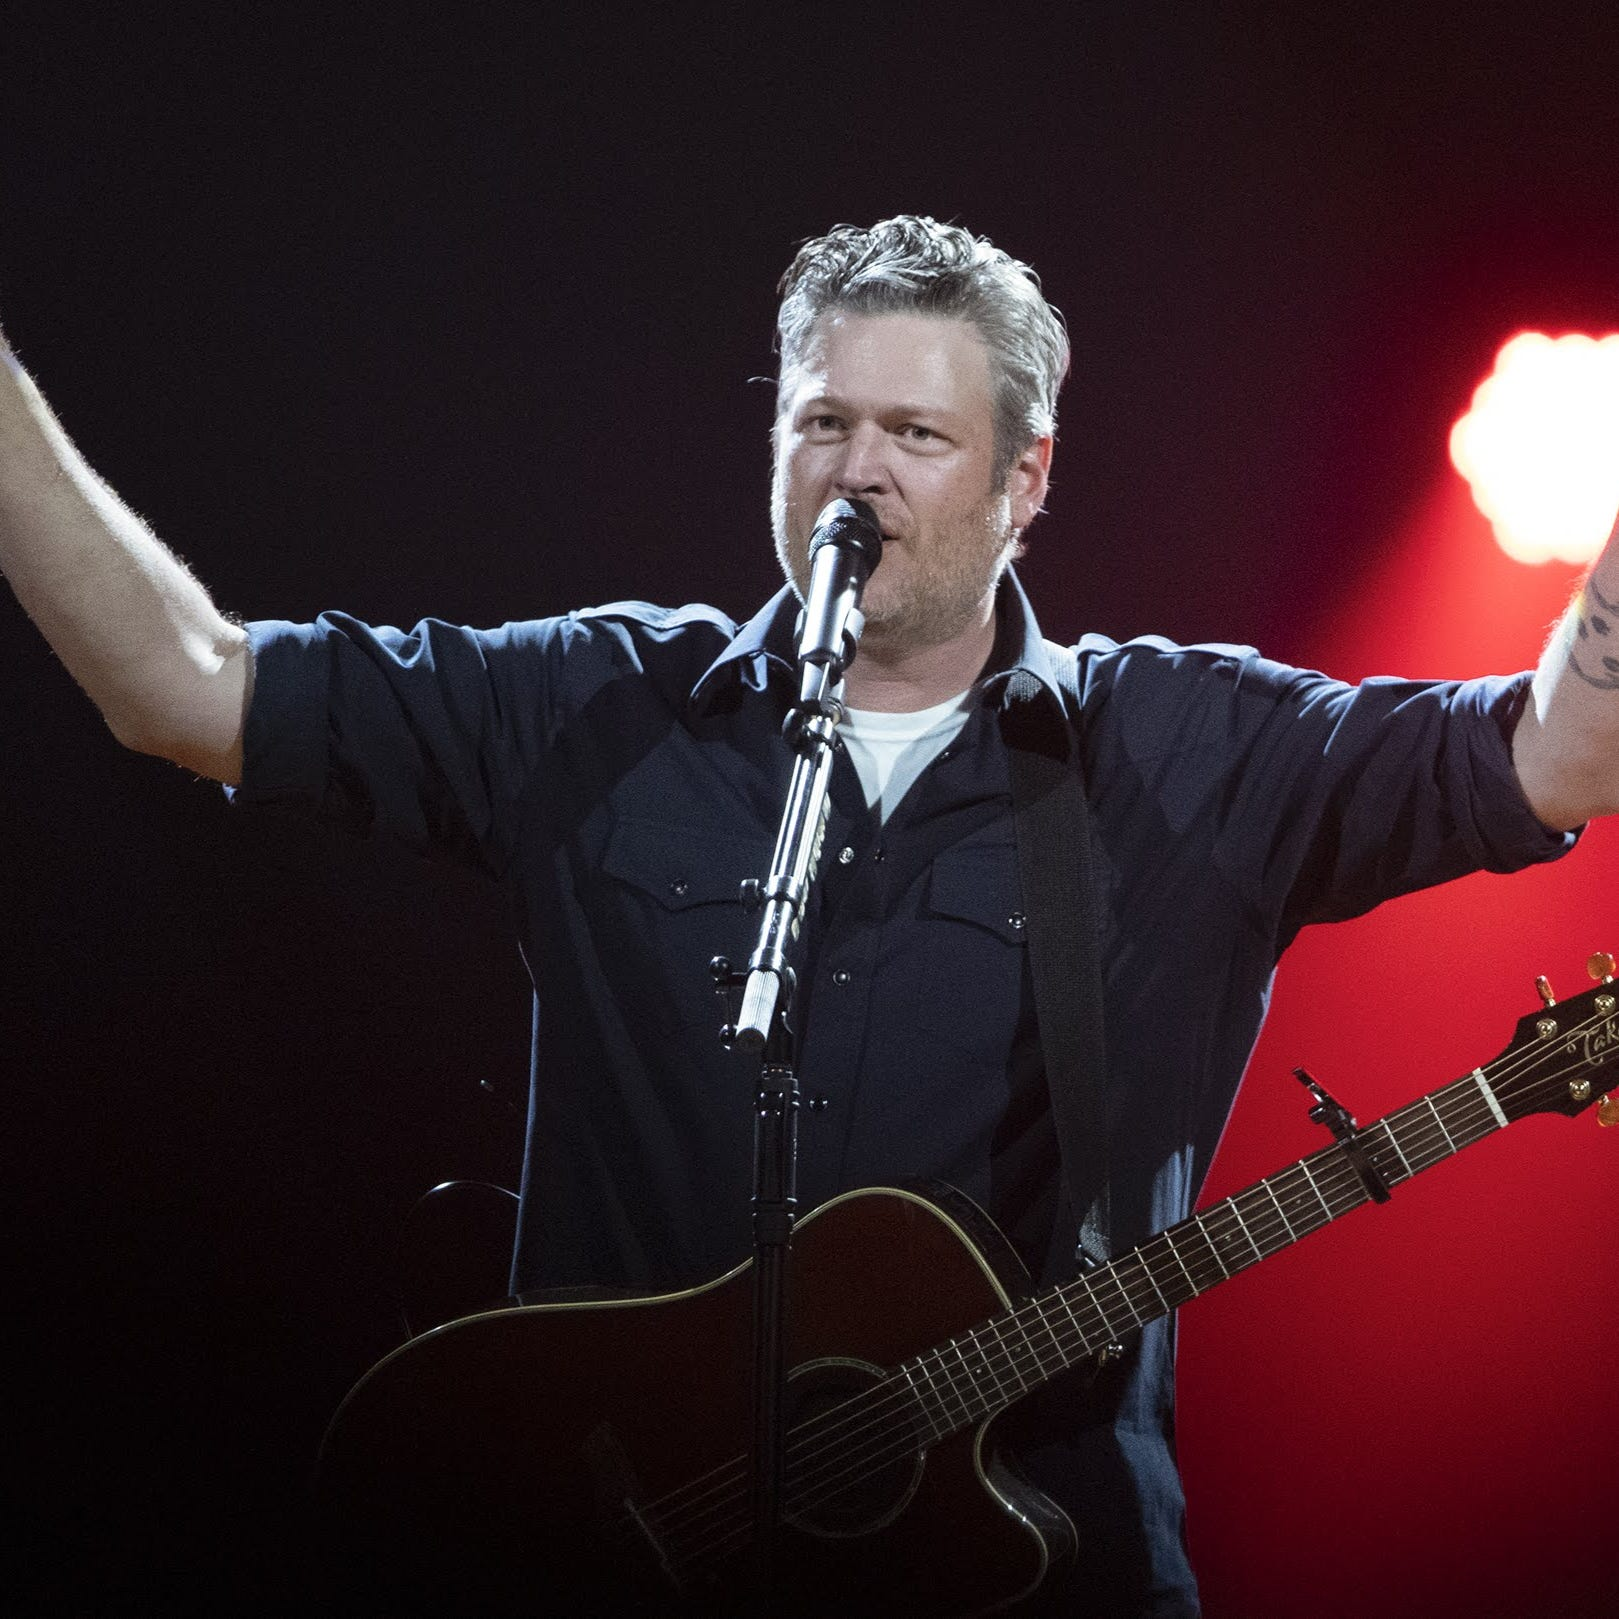 Blake Shelton treats fans (and himself) to throwback fun with 'Friends and Heroes'